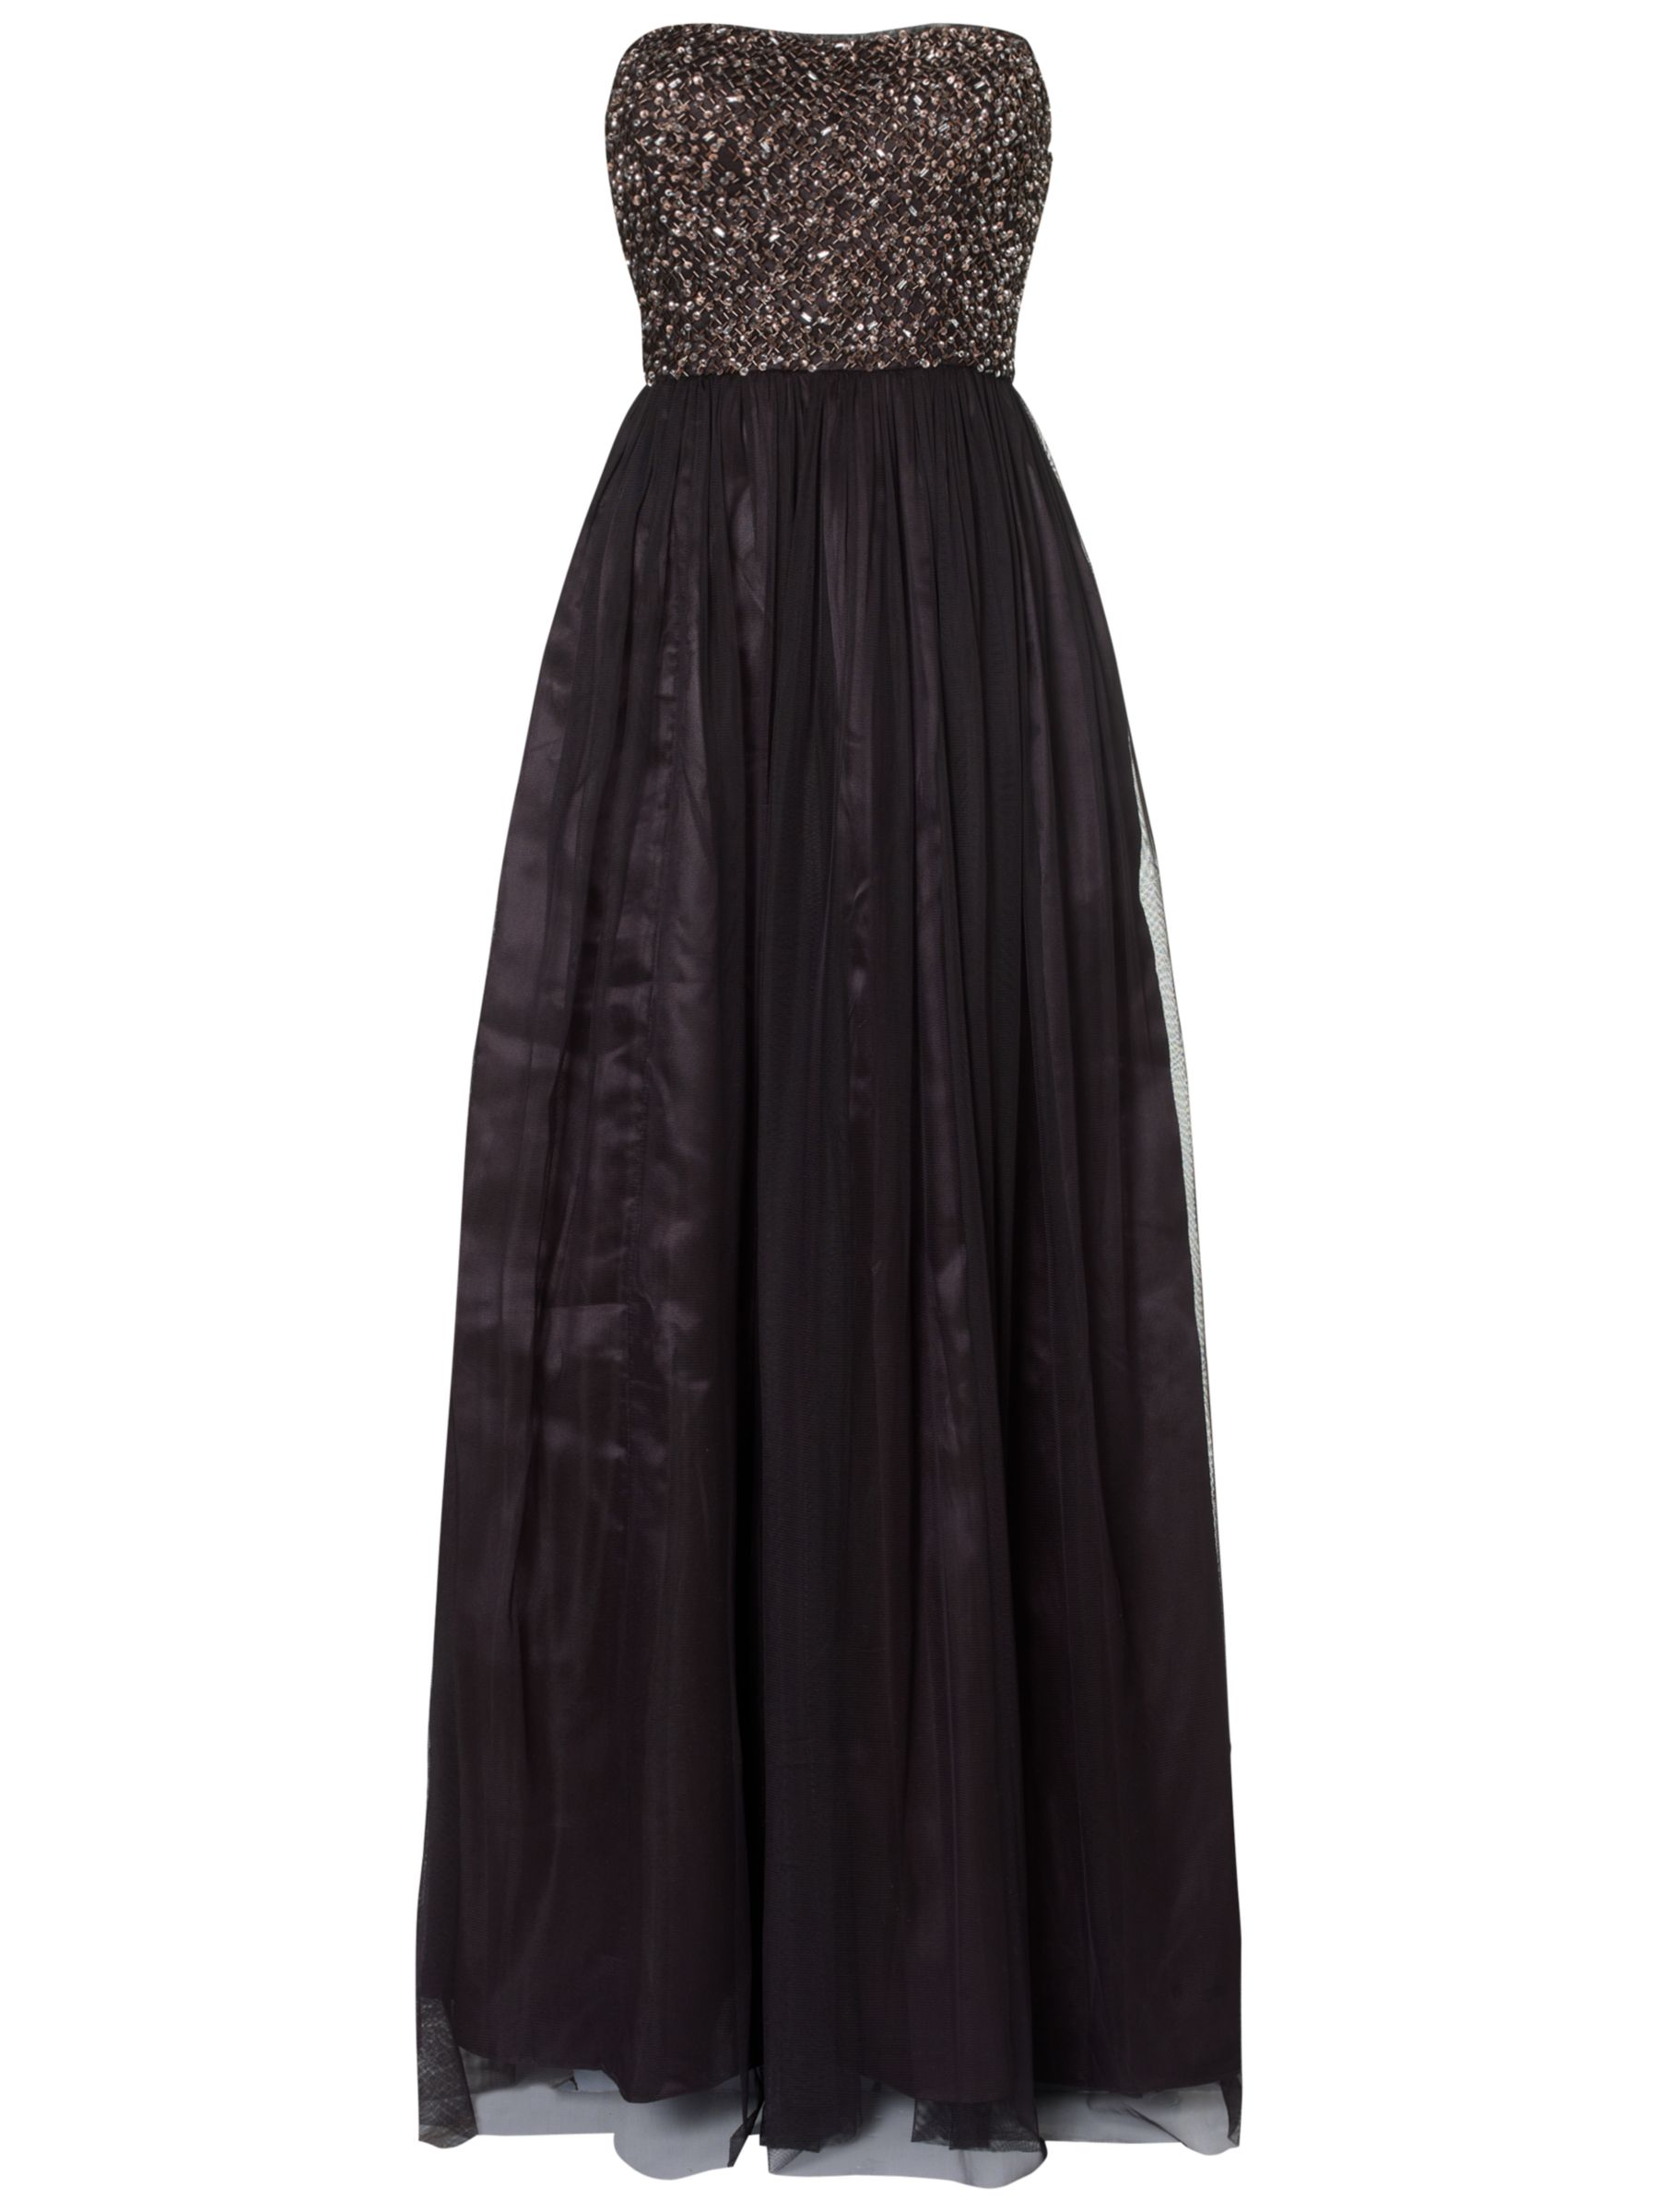 aidan mattox strapless evening dress black/bronze, aidan, mattox, strapless, evening, dress, black/bronze, aidan mattox, 6|14|8|16|10|12, women, eveningwear, nov 14 - laid-back luxe, womens dresses, edition magazine, one enchanted evening, party outfits, evening gowns, special offers, womenswear offers, womens dresses offers, embellishment, 1711371